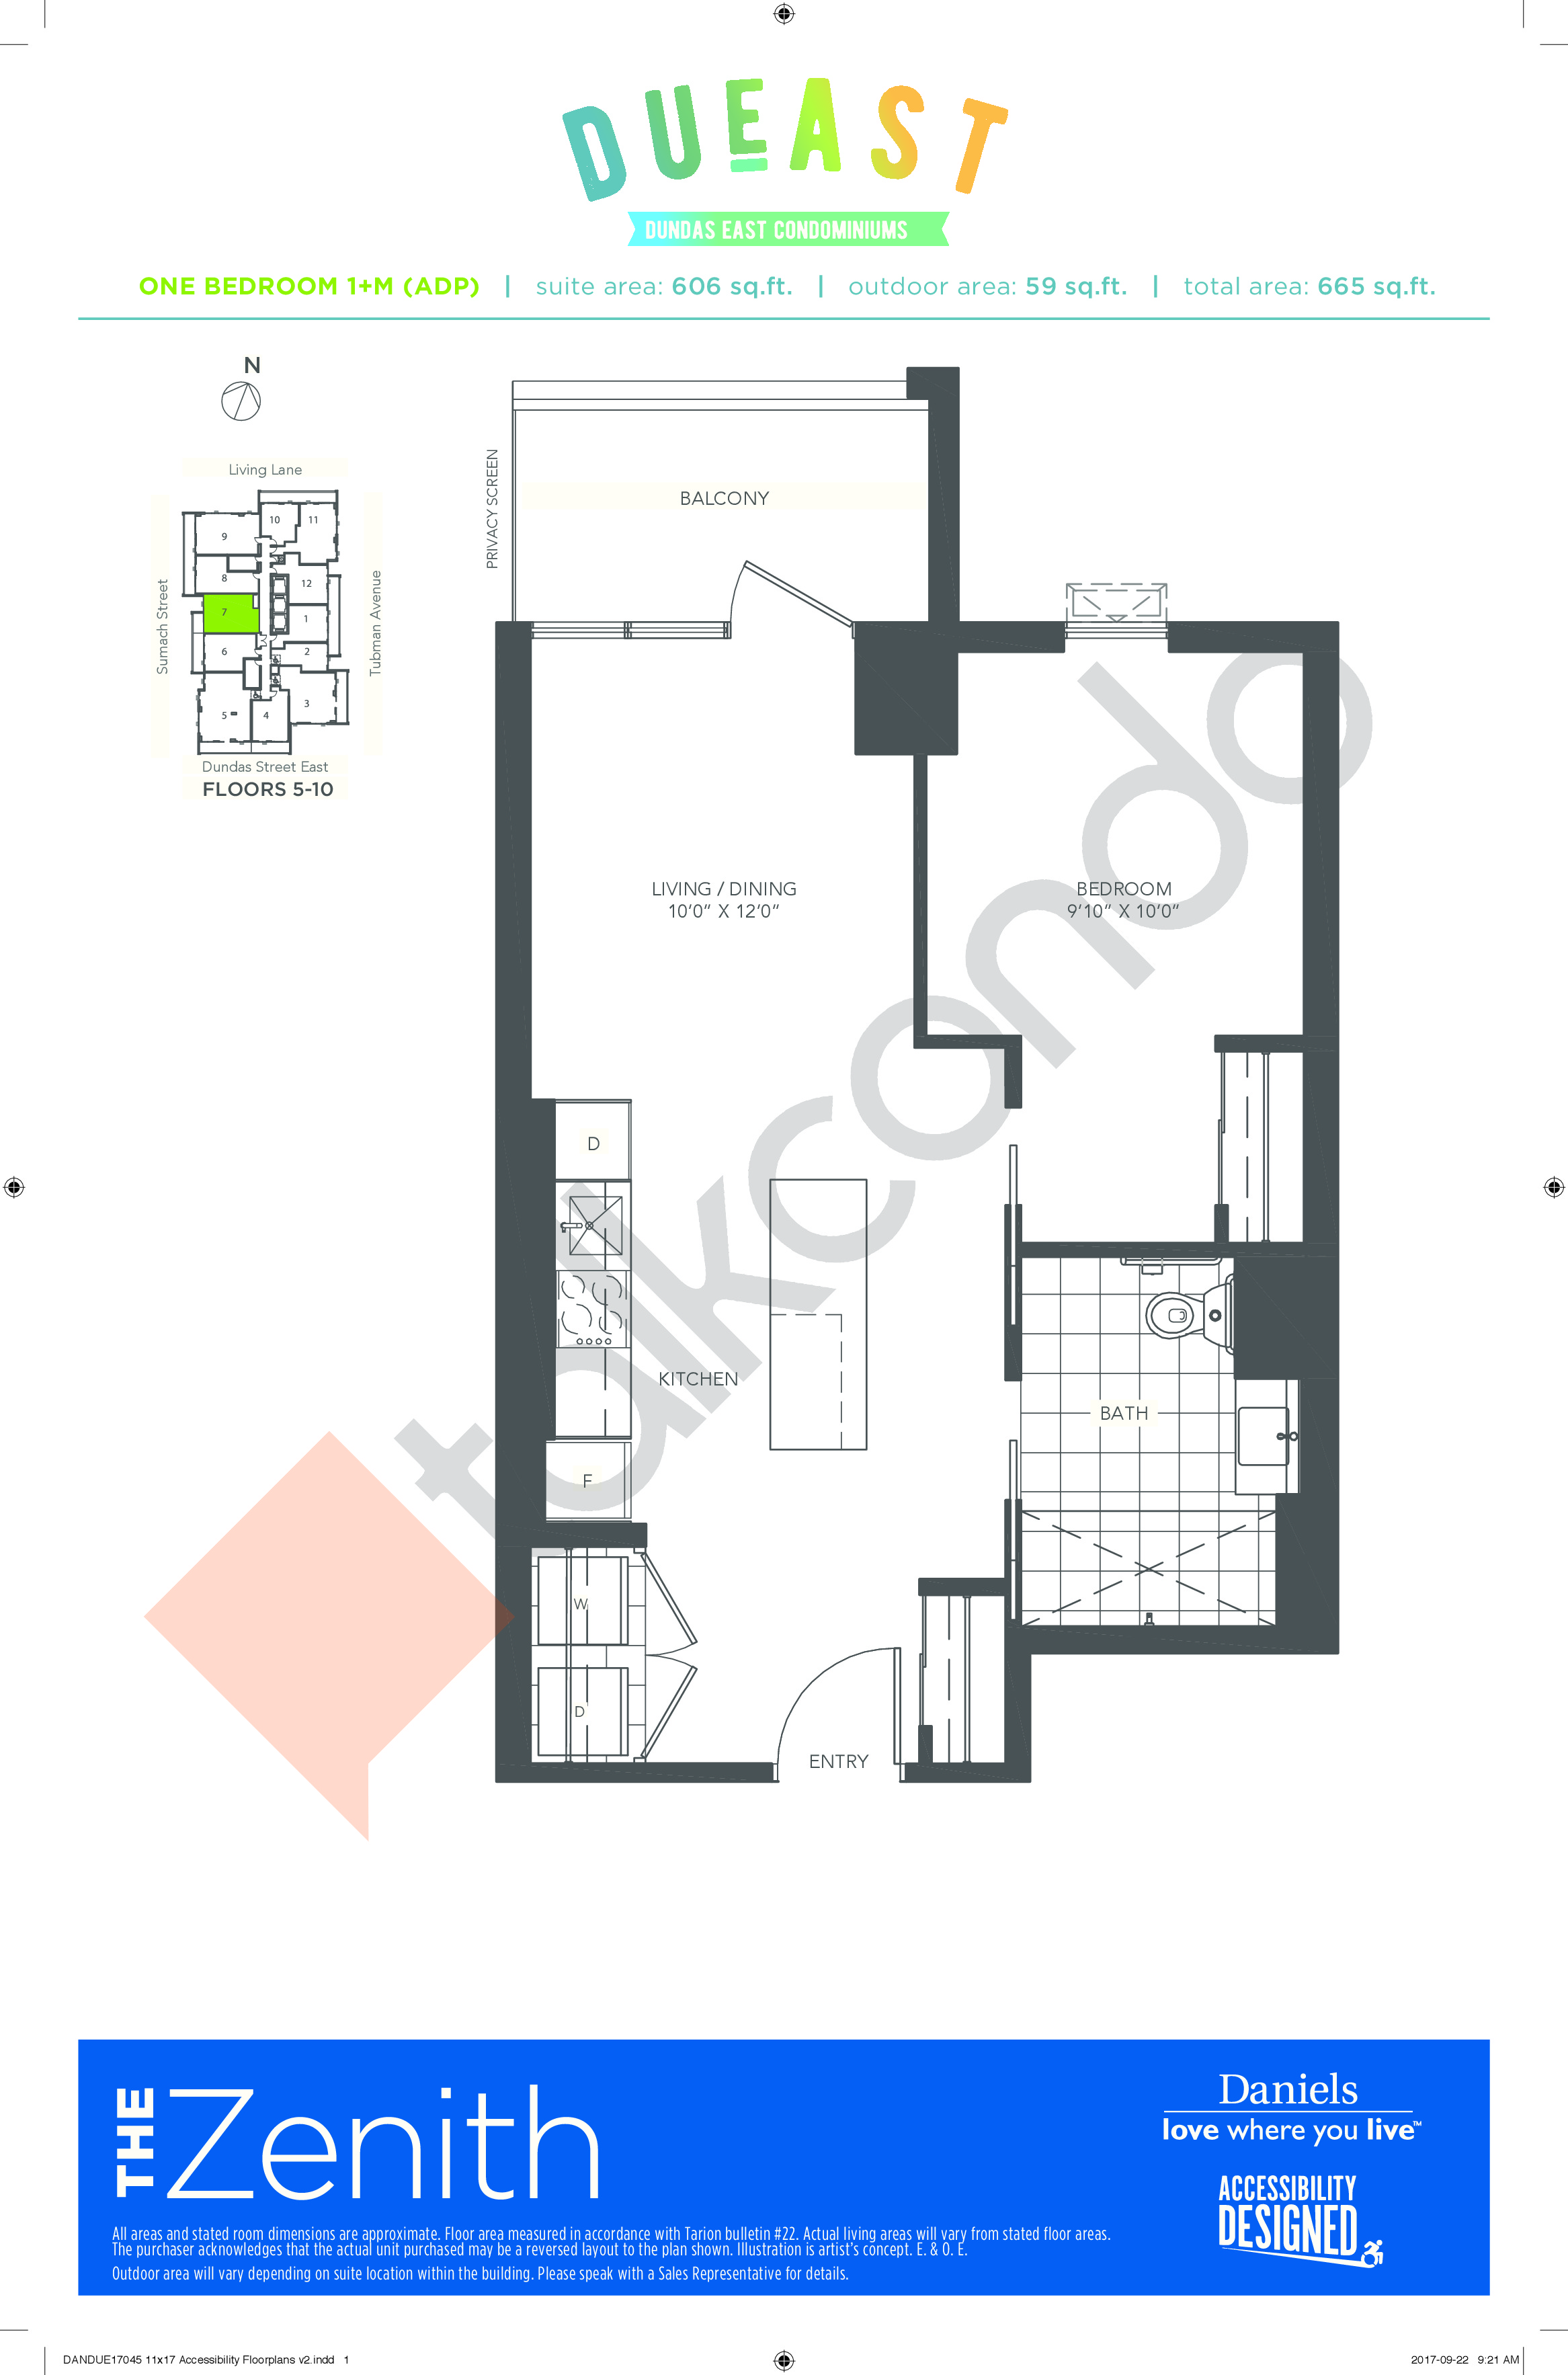 The Zenith 1+M (ADP) Floor Plan at DuEast Condos - 606 sq.ft